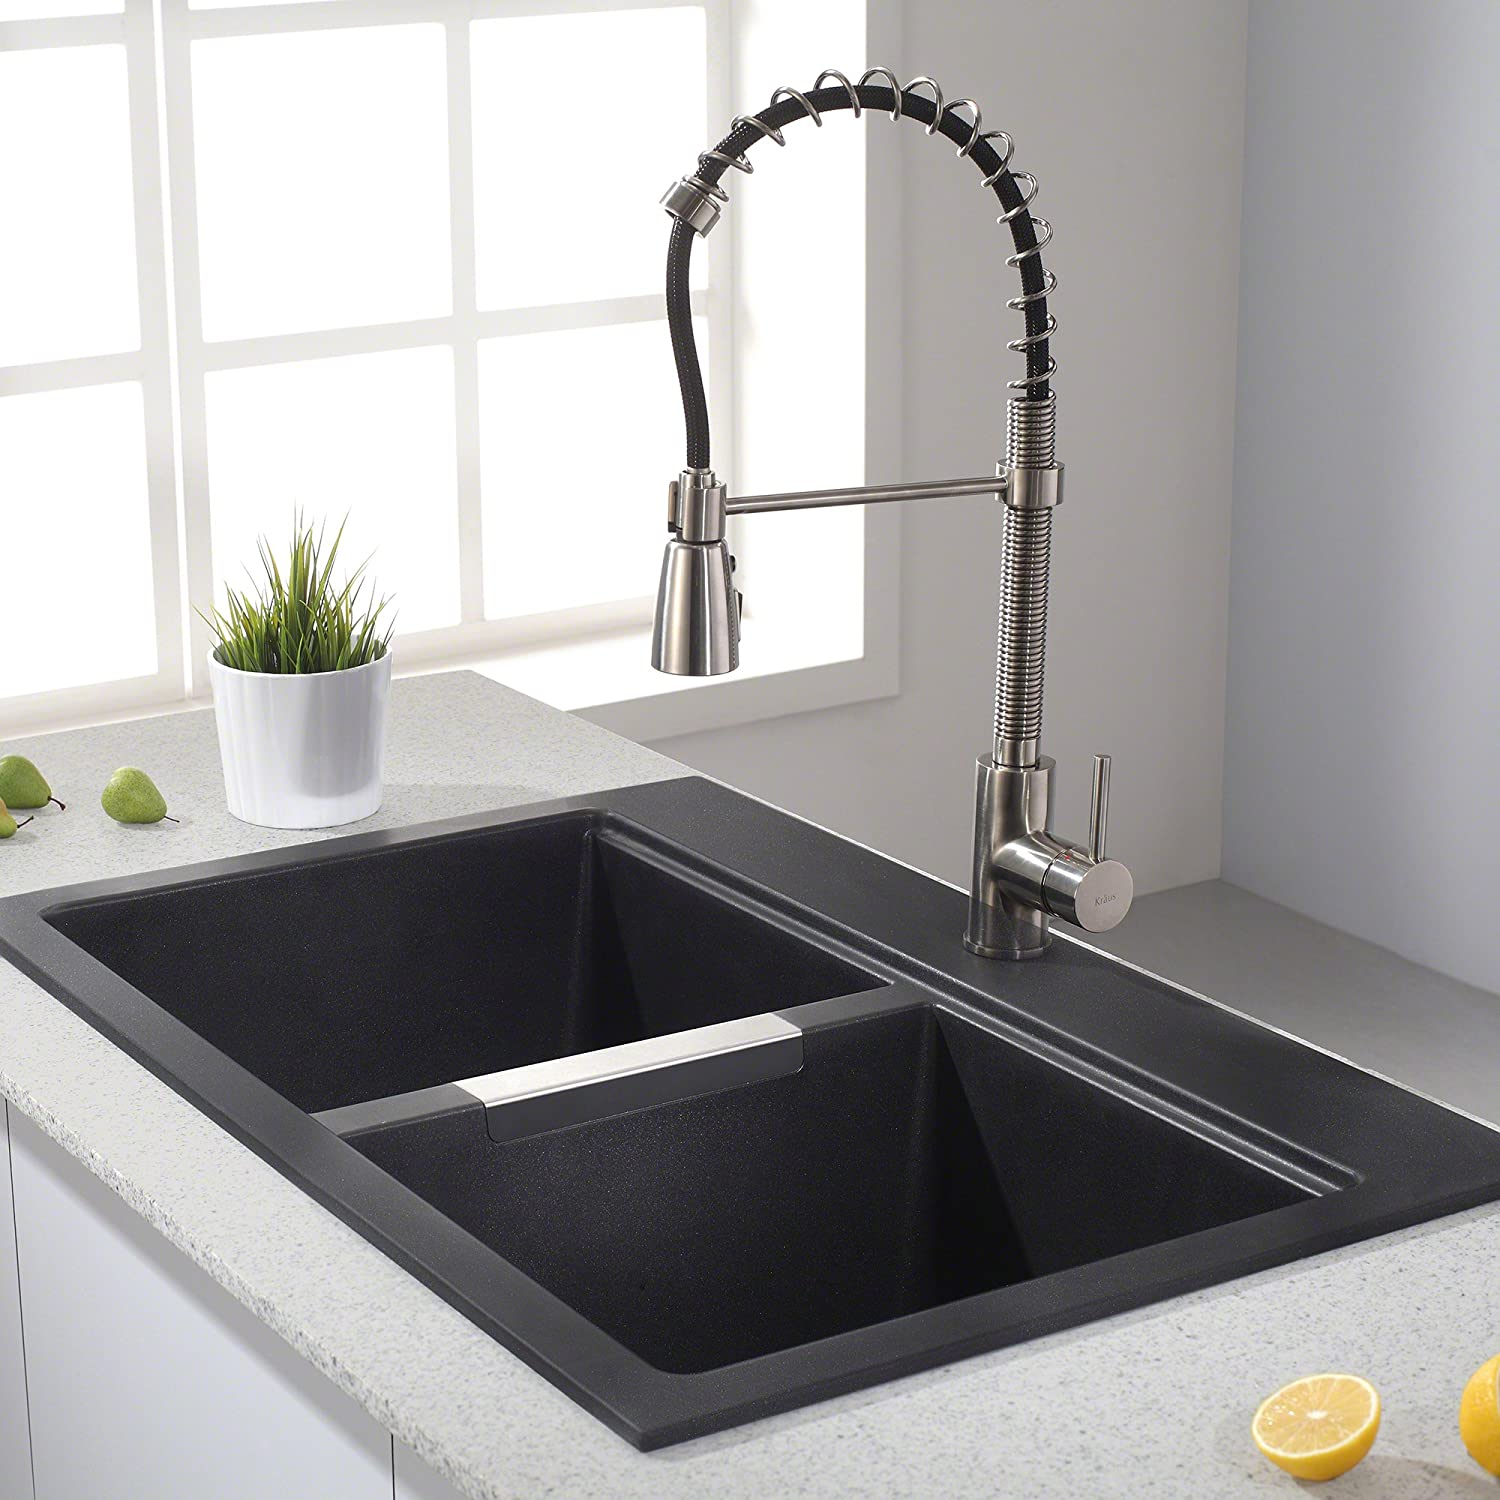 Kraus Quarza Dual Mount 50/50 Double Bowl Black Kitchen Sink Review ...